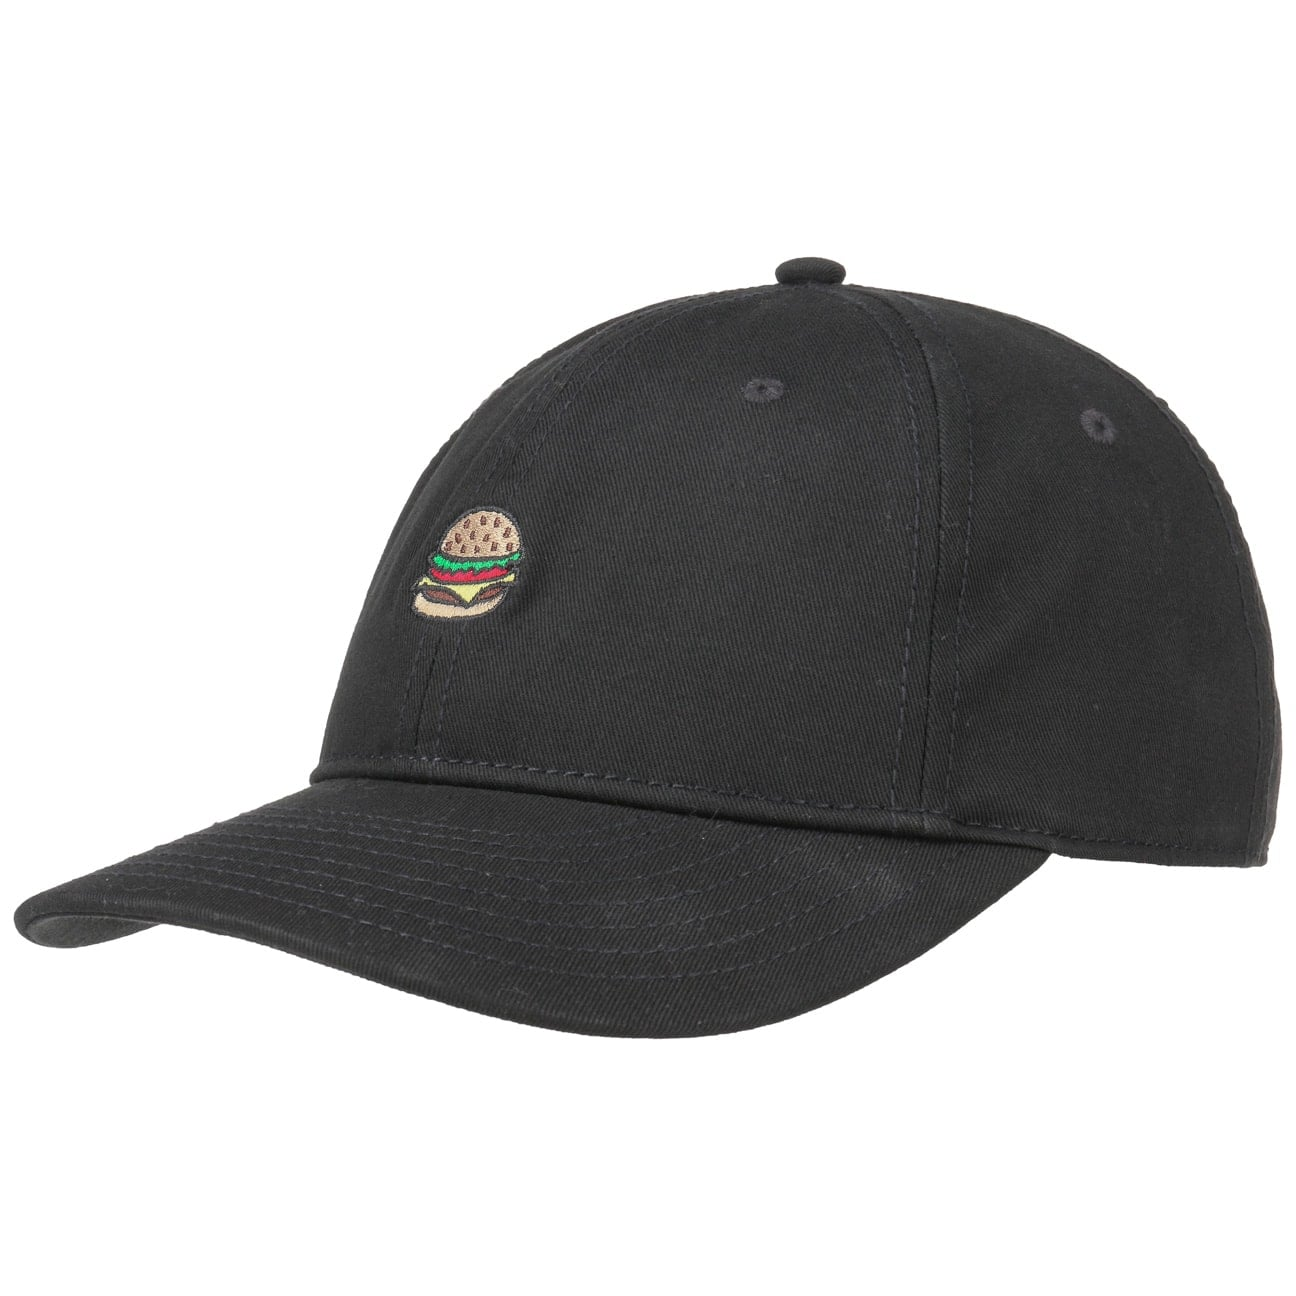 Casquette Strapback Patty Dad Hat  by WEMOTO  baseball cap